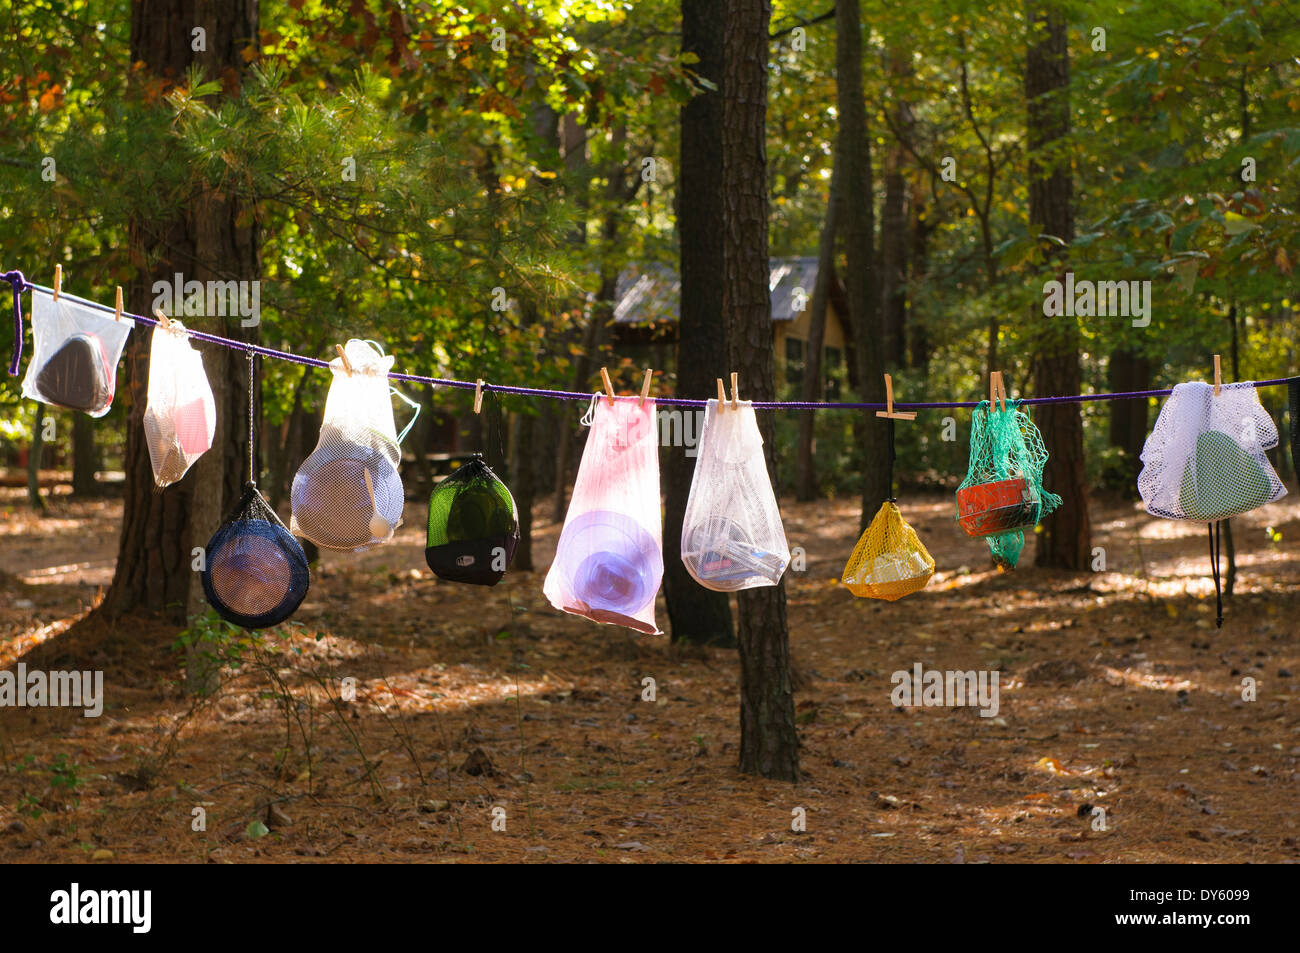 Mess kits, camping equipment, hanging to dry at camp site. - Stock Image